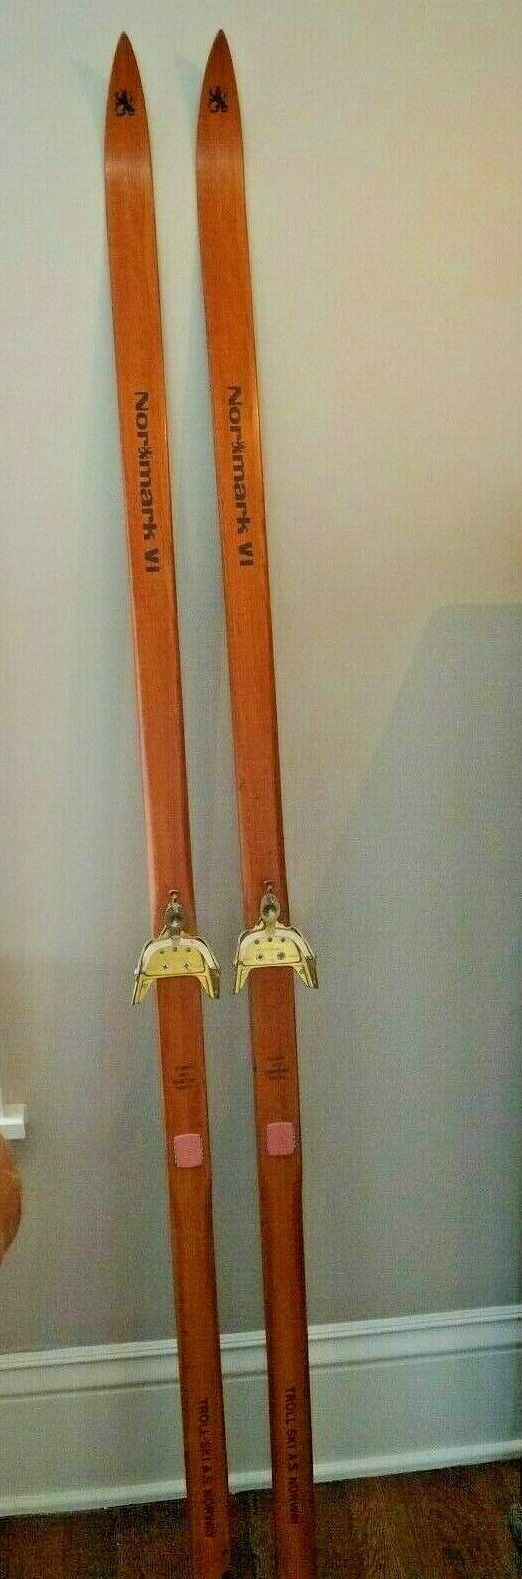 Vintage Wooden X-Country Skis  Normark Norwegian 200 mm      Excellent Condition